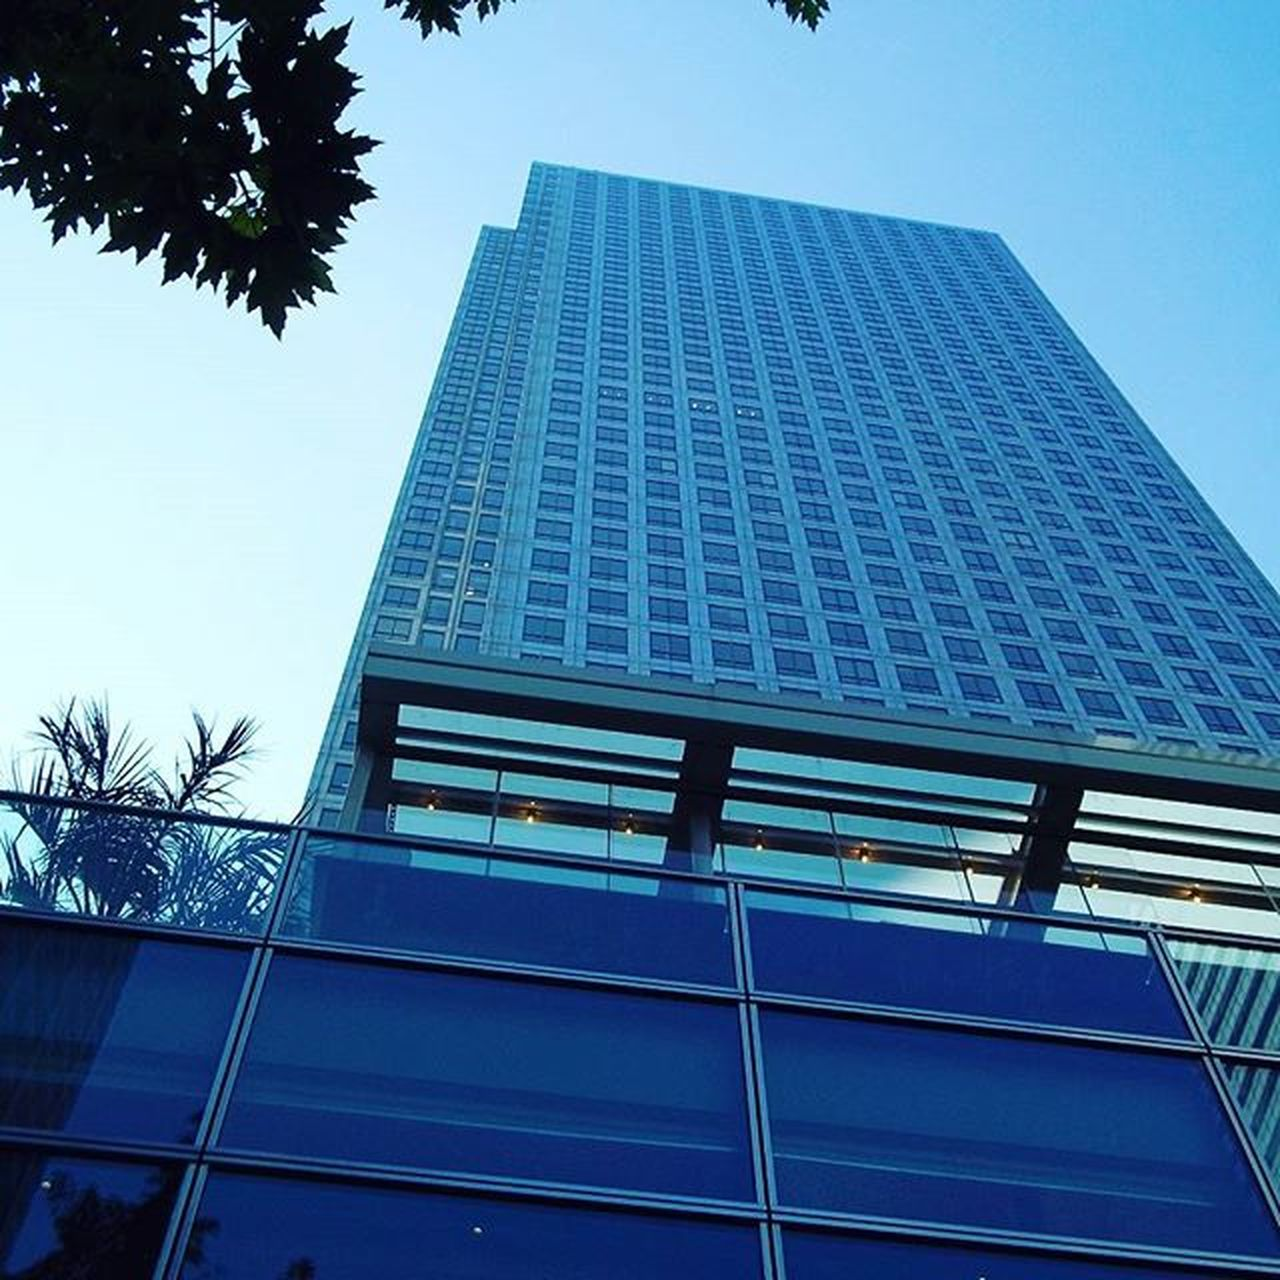 architecture, built structure, building exterior, low angle view, modern, skyscraper, day, tall, outdoors, no people, blue, city, growth, tree, corporate business, sky